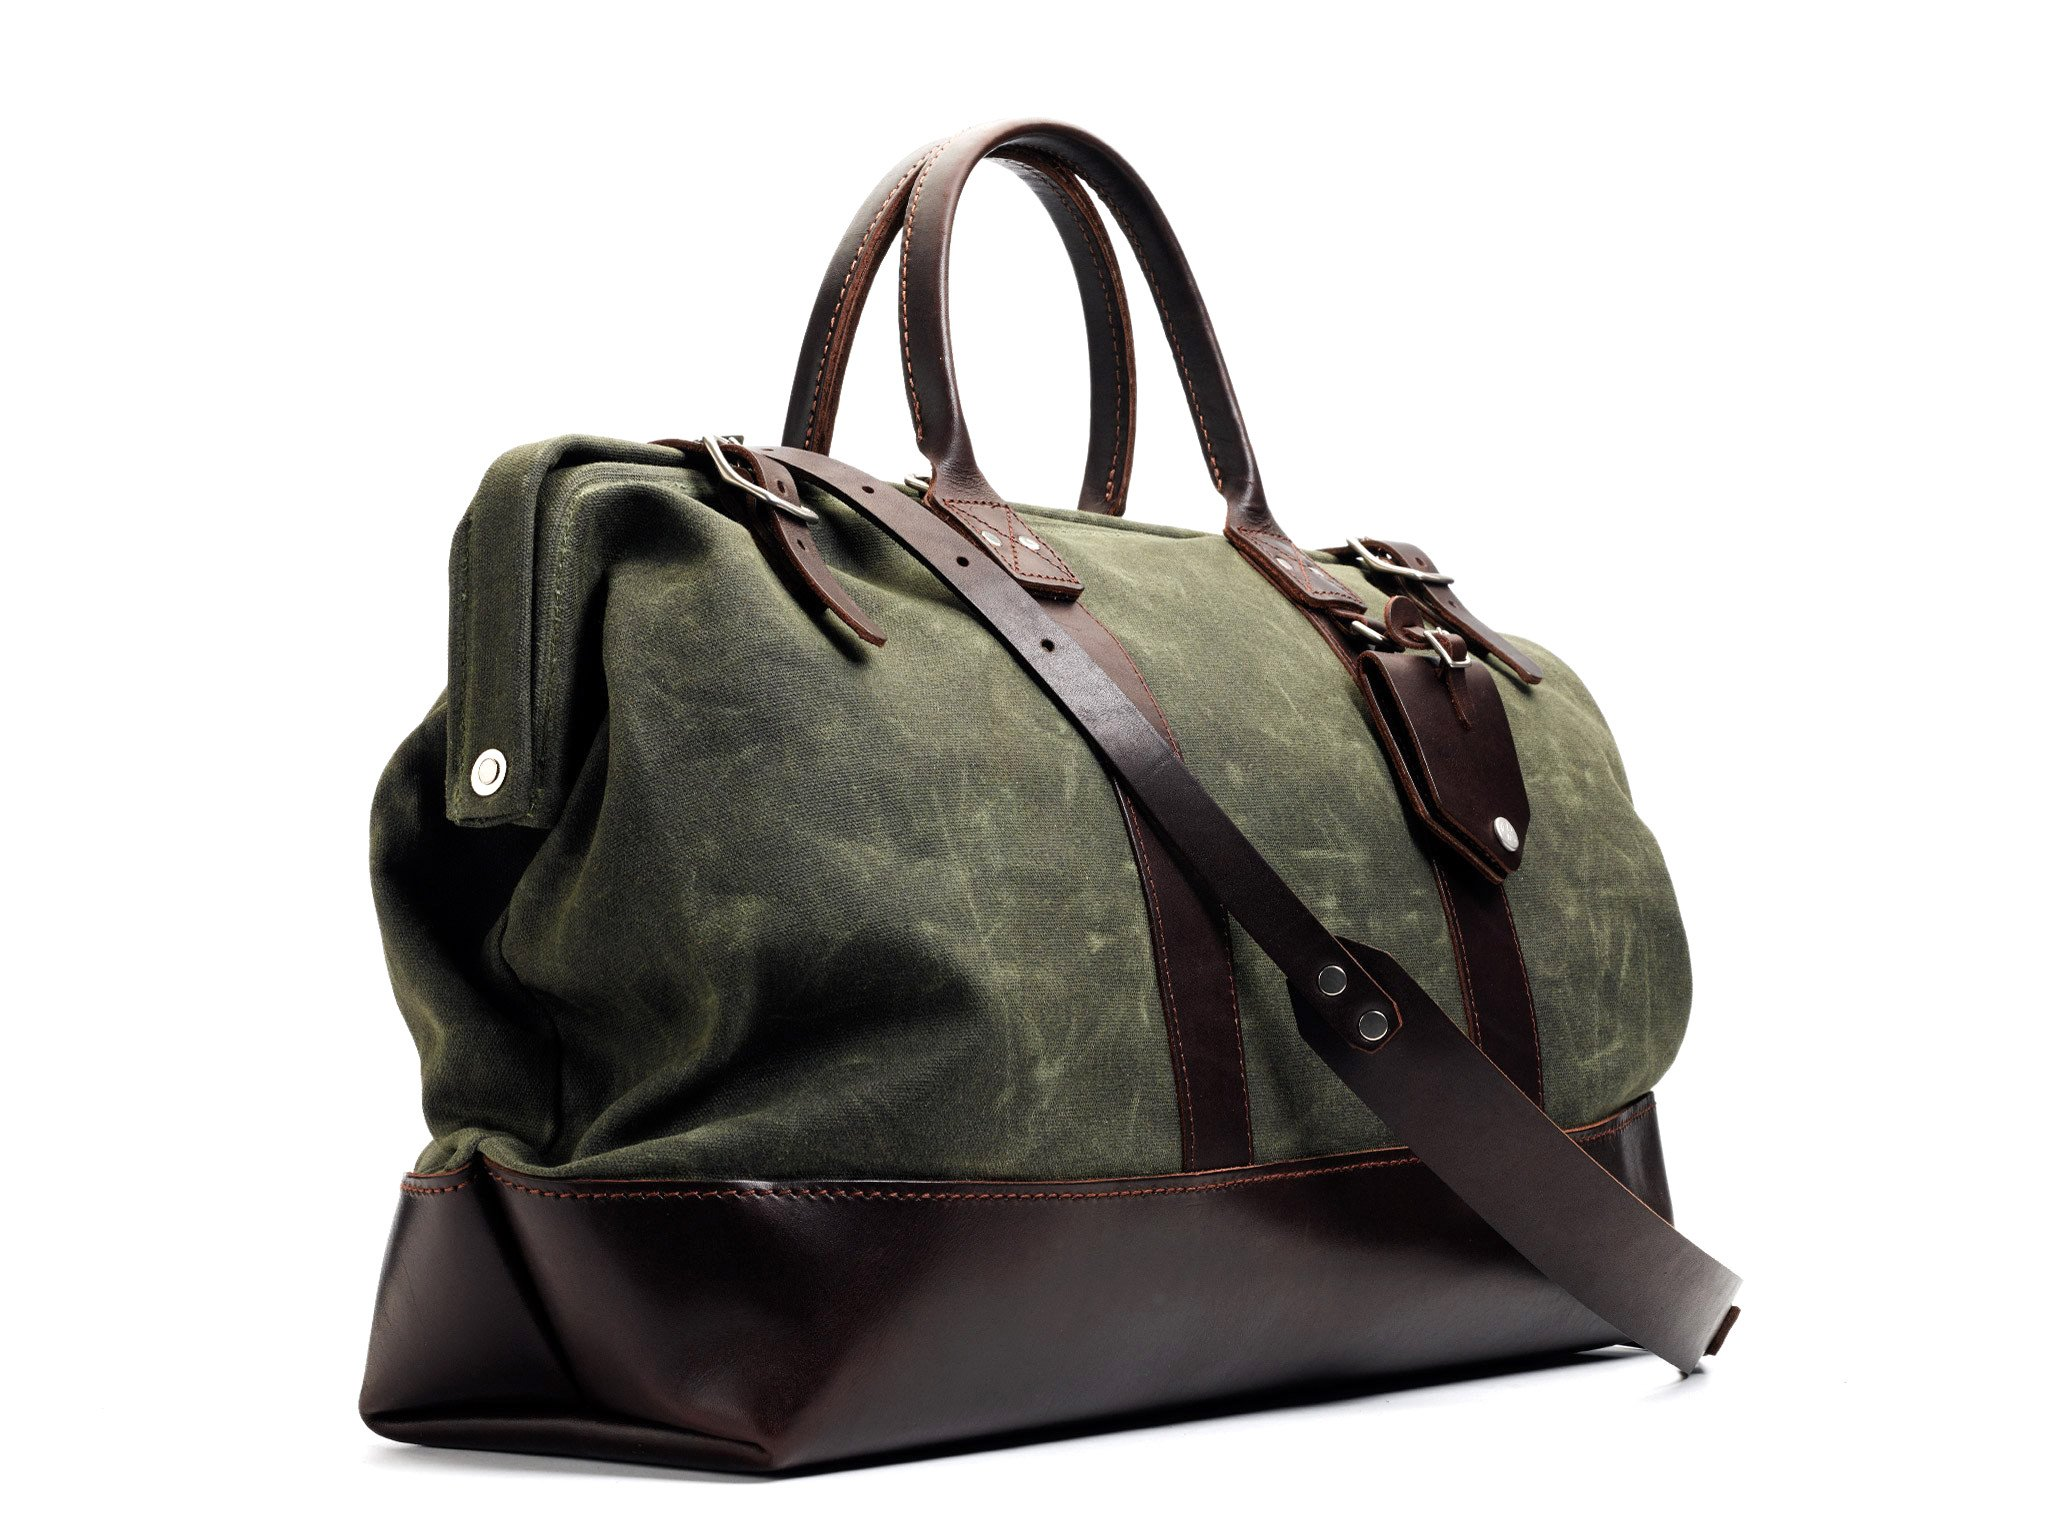 Billykirk No. 166 Medium Carryall (Olive) by Billykirk